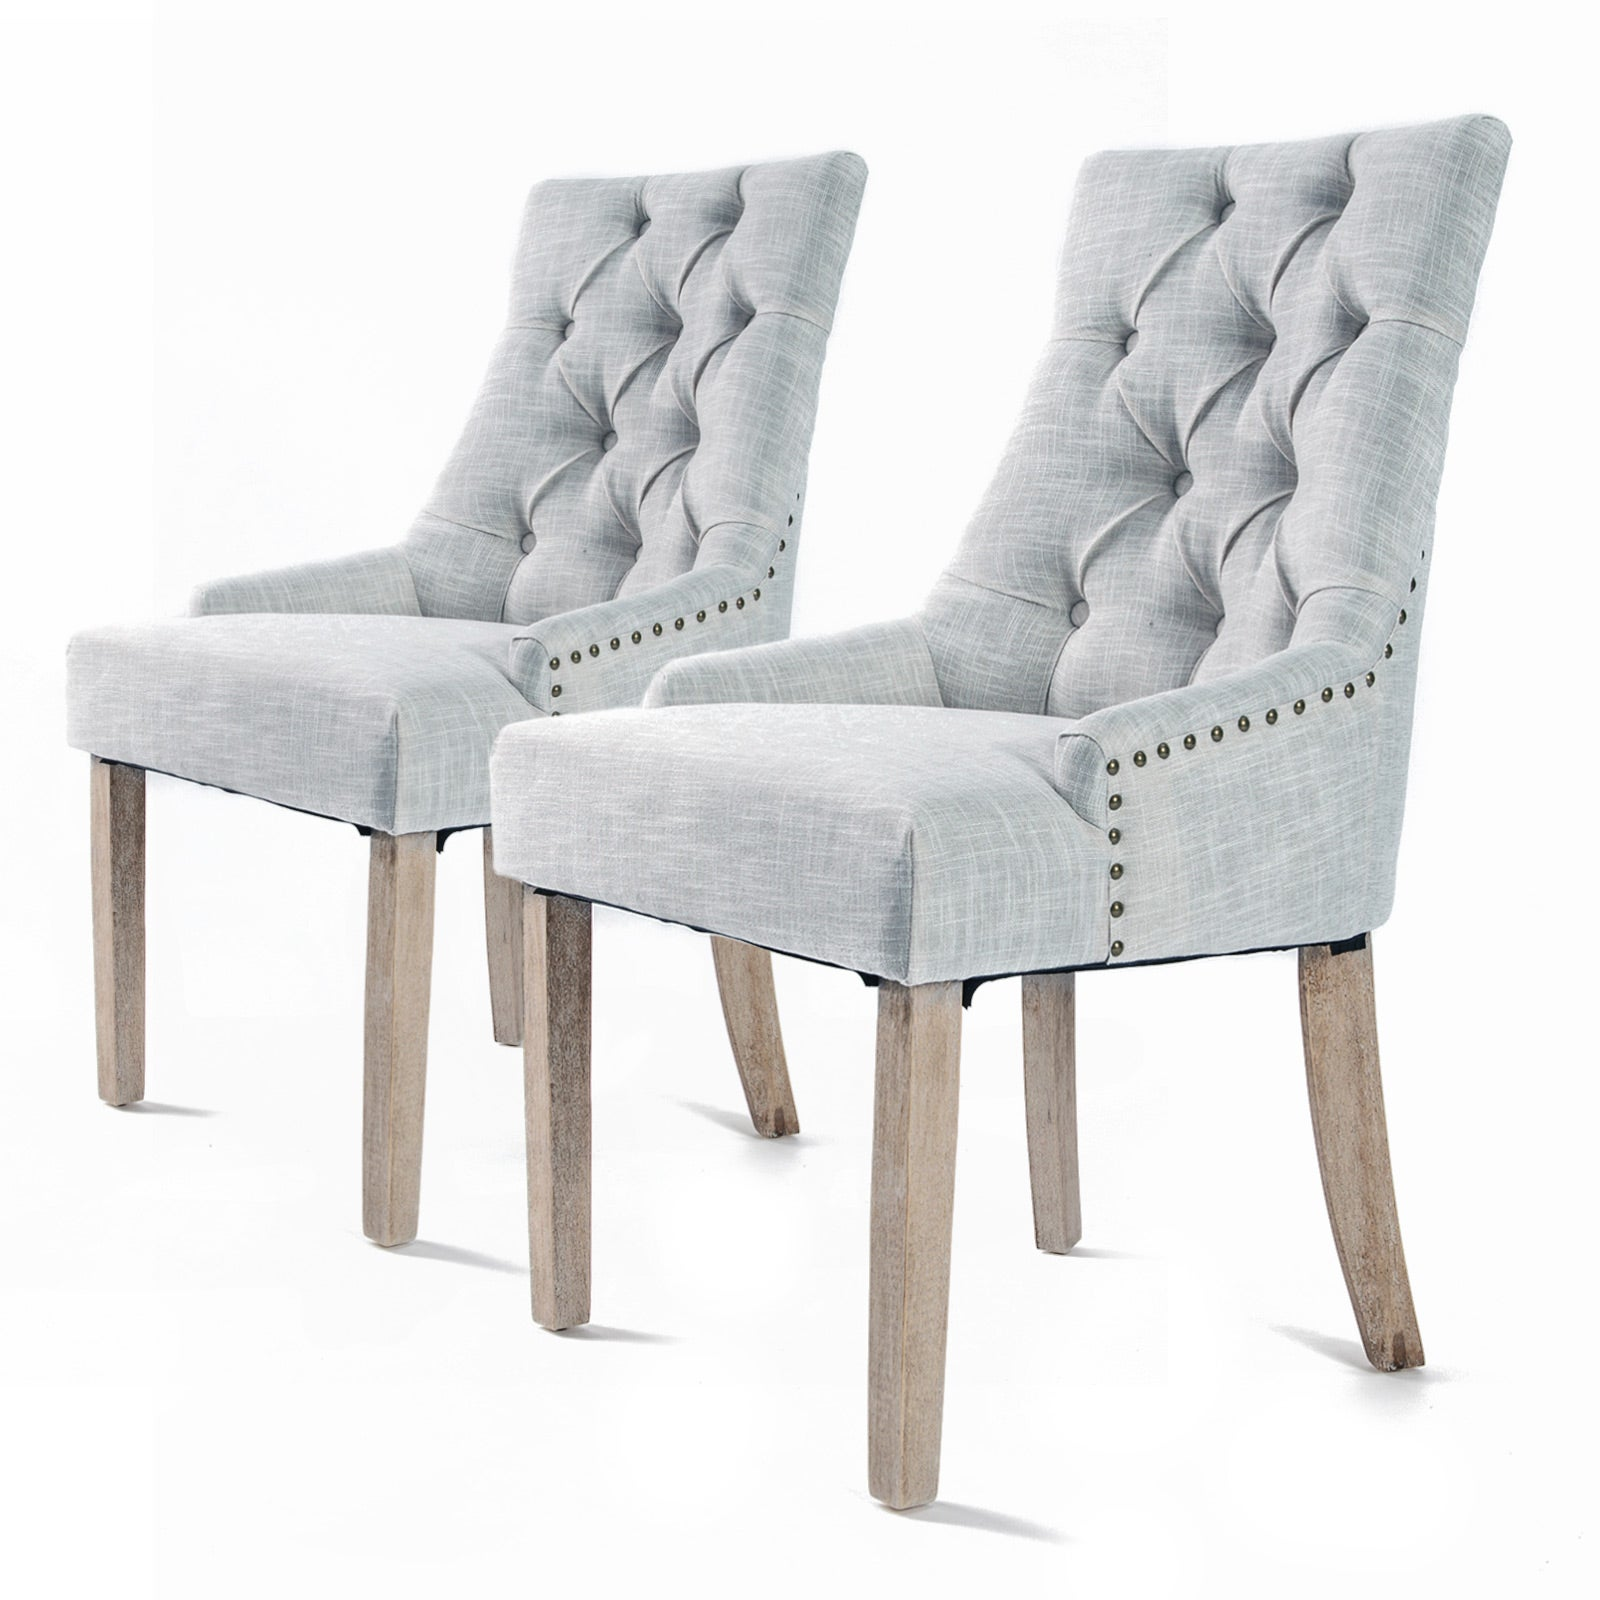 2X French Provincial Dining Chair Oak Leg AMOUR GREY